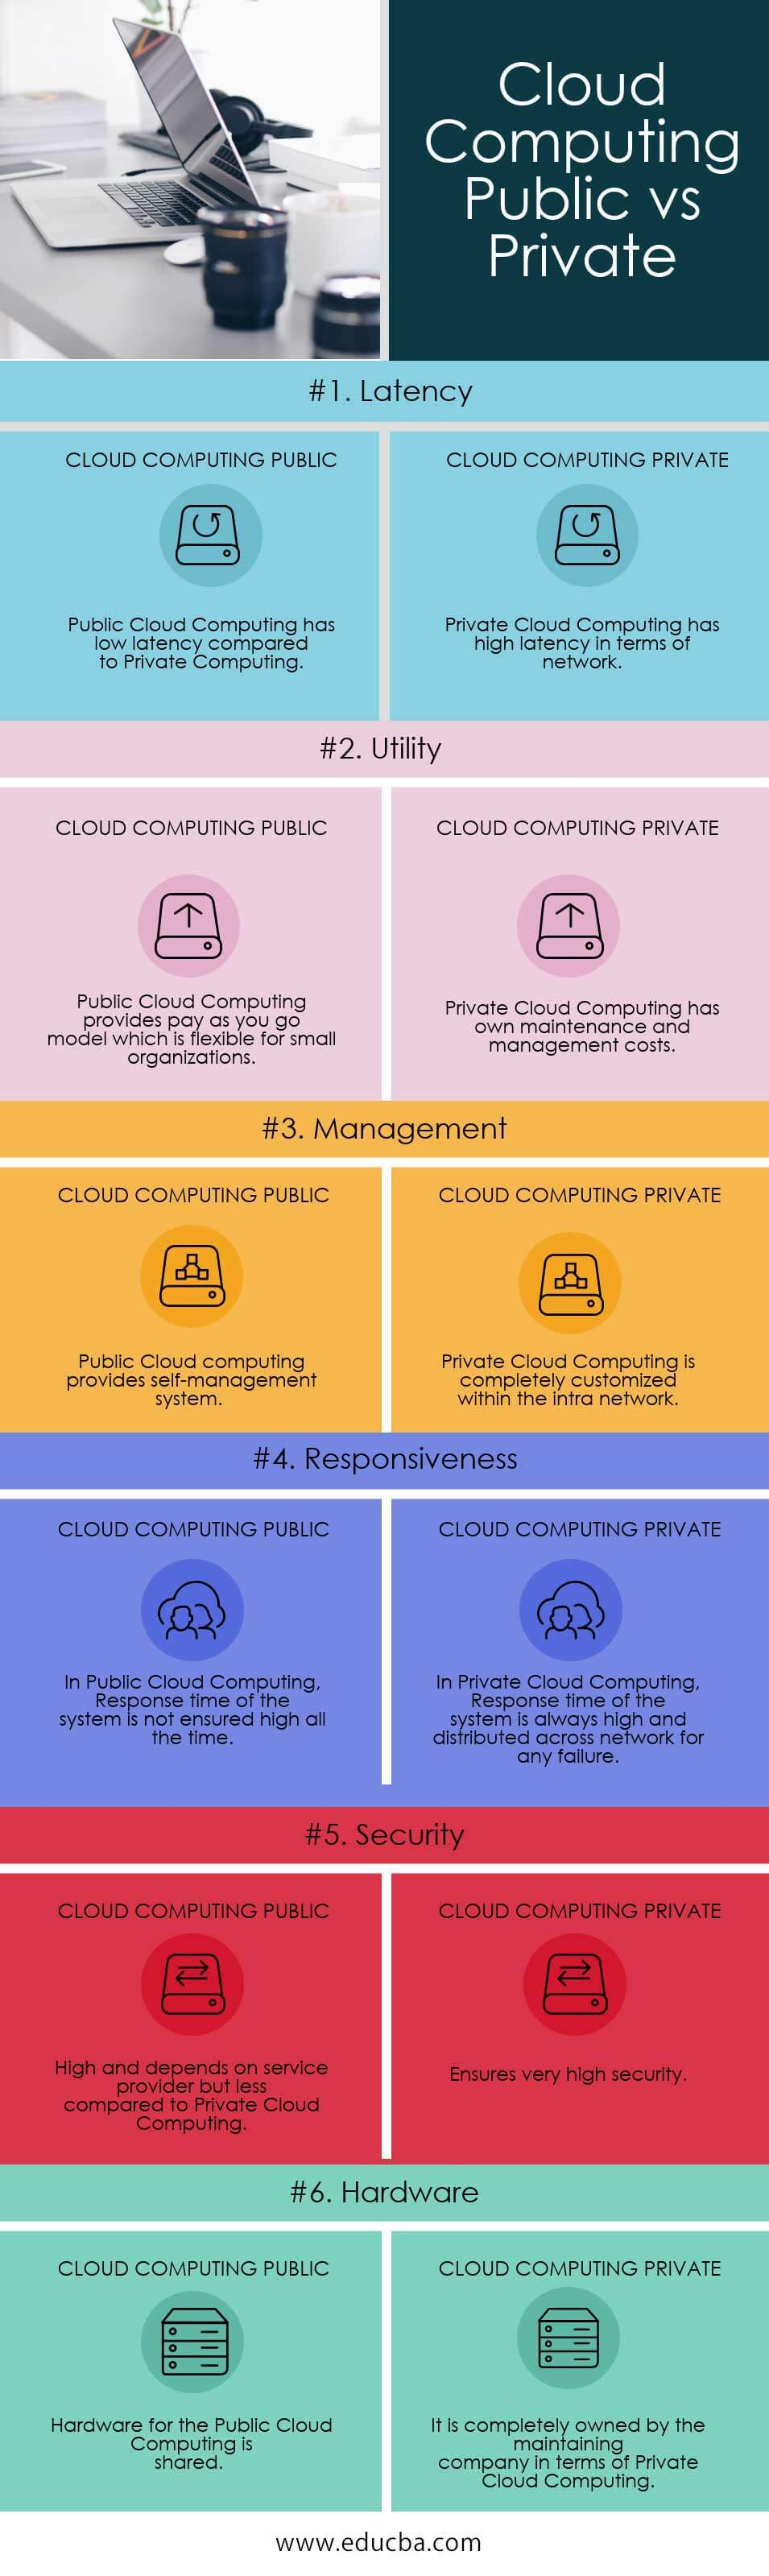 Cloud Computing Public vs Private info